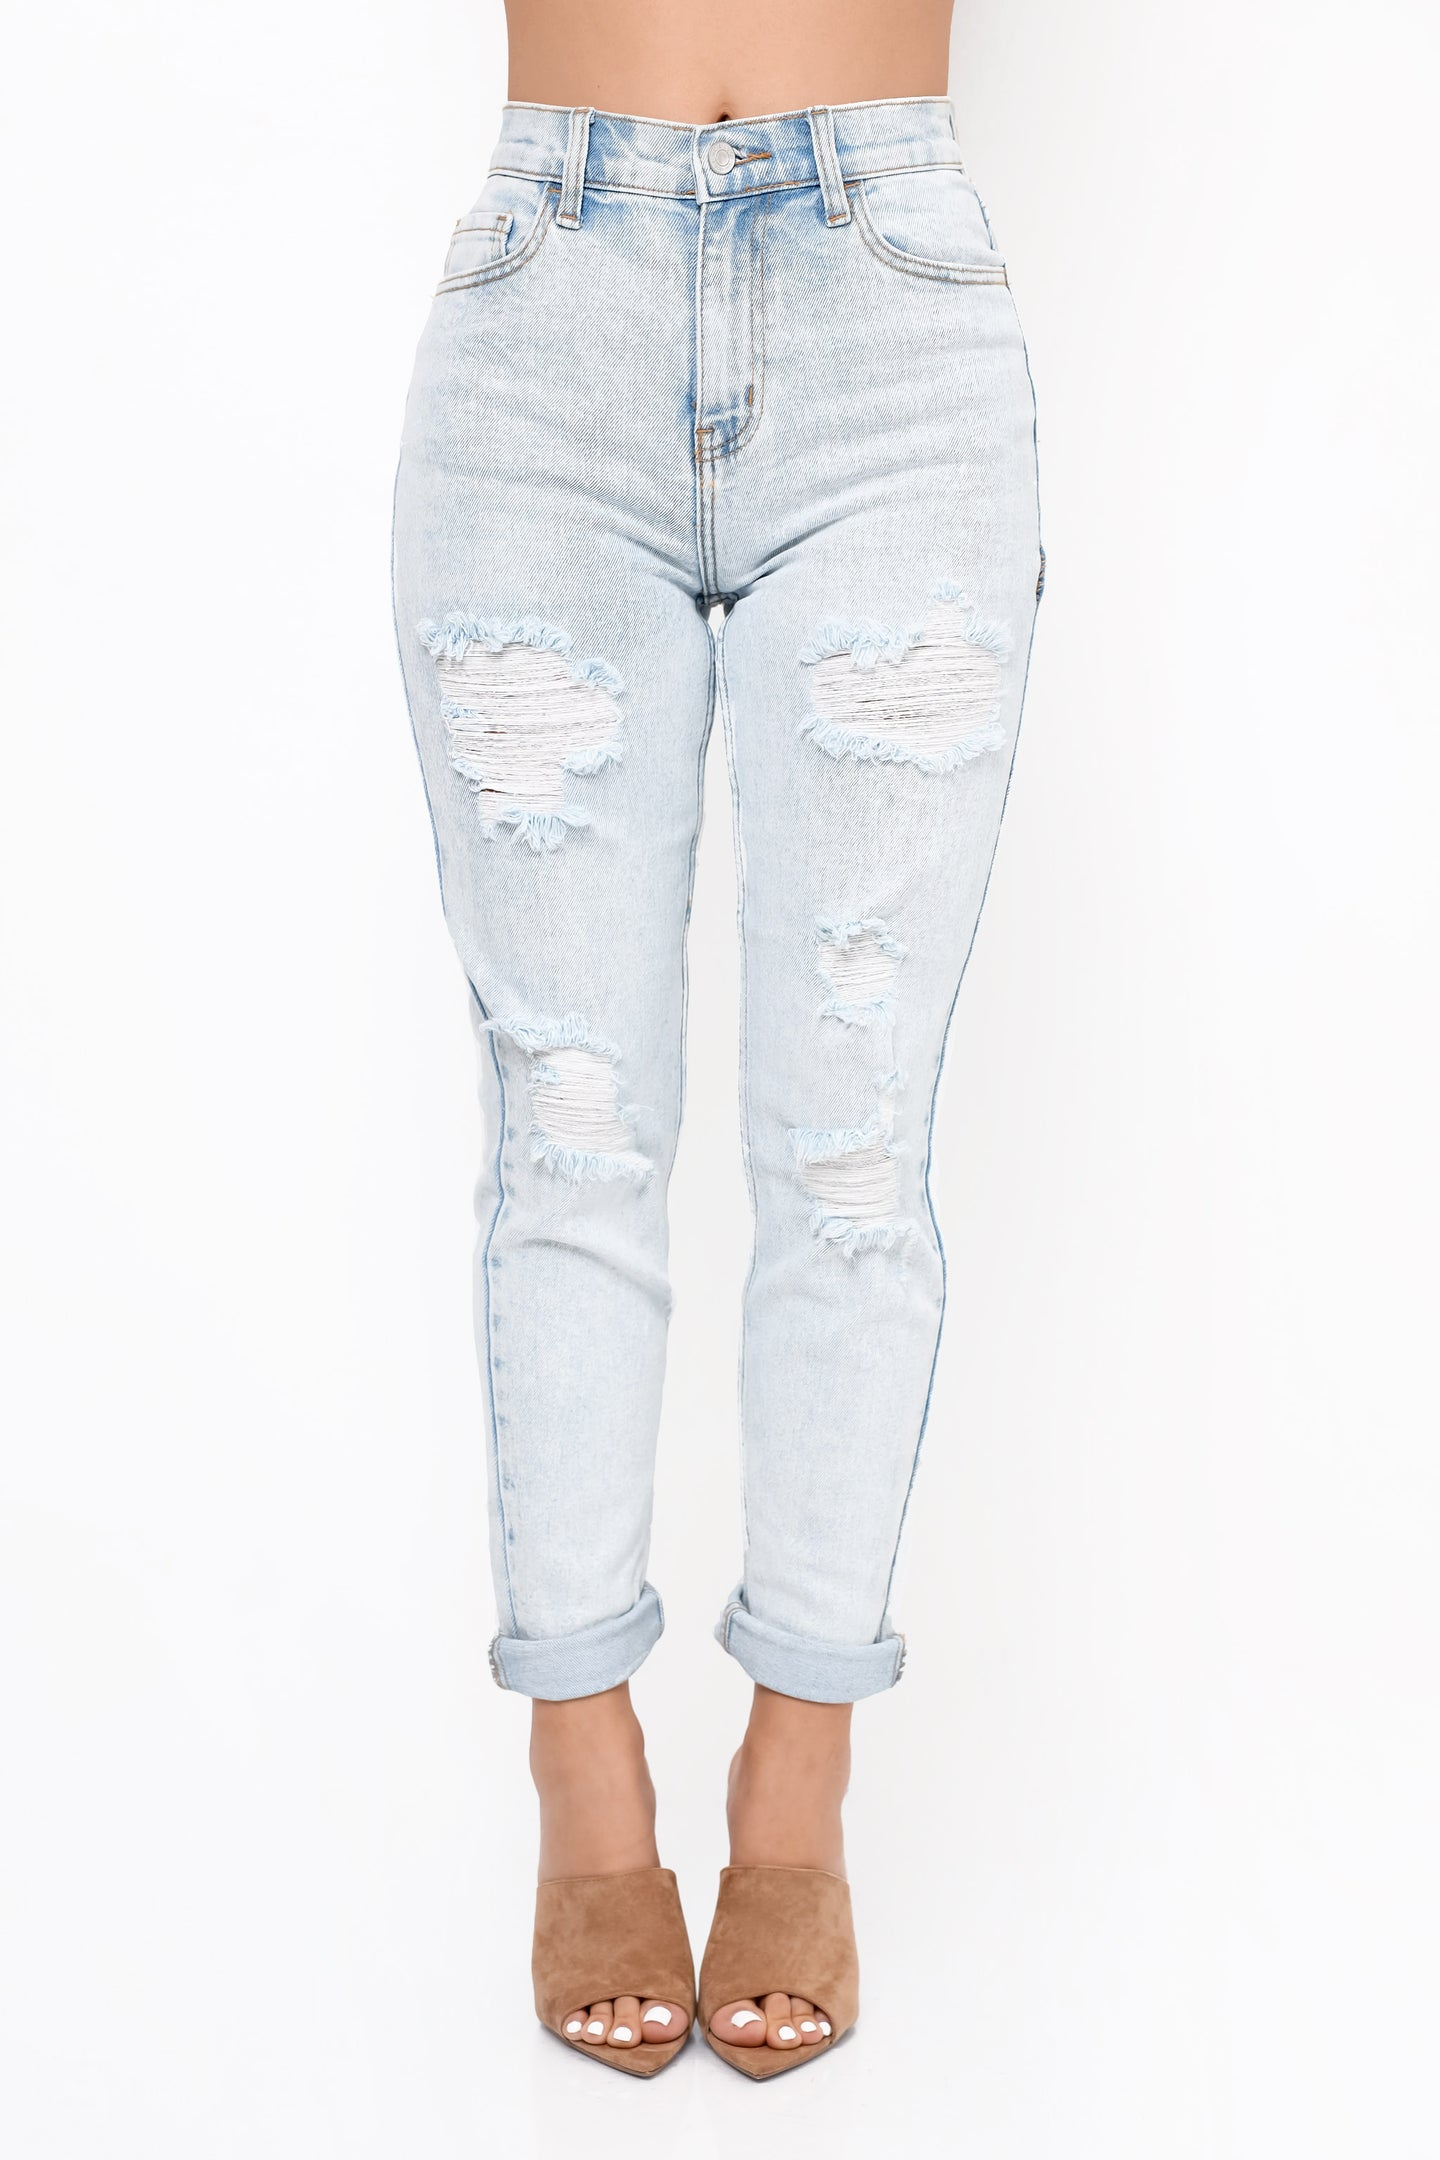 Bleached Out Jeans - Light Wash